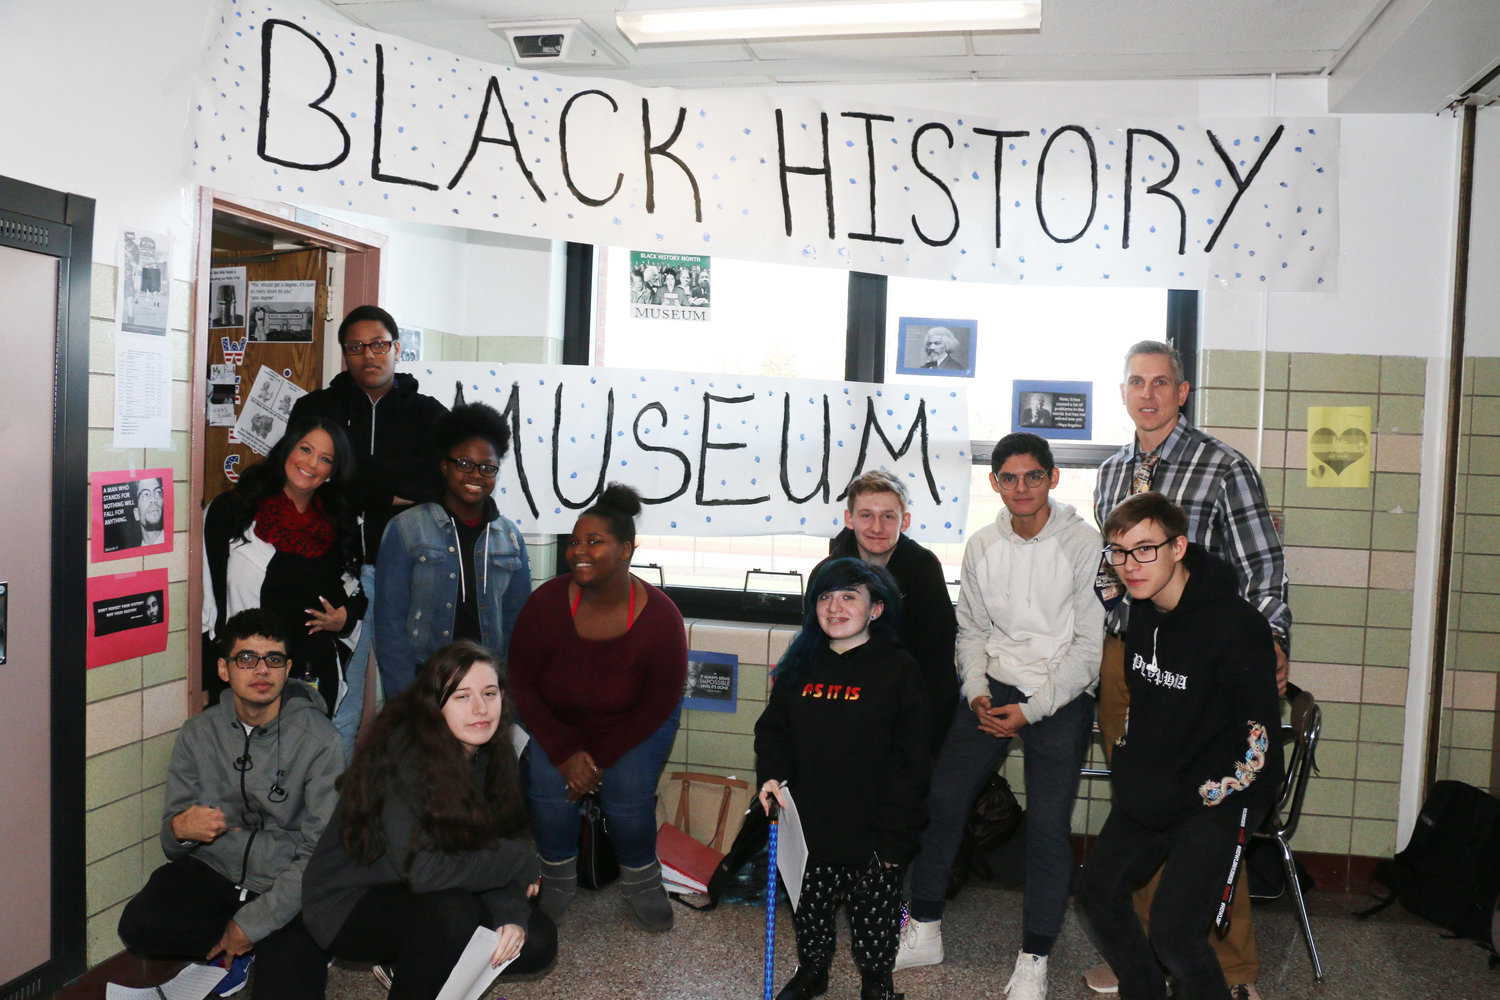 West Hempstead High School students gathered for its annual Black History museum on Feb. 14.